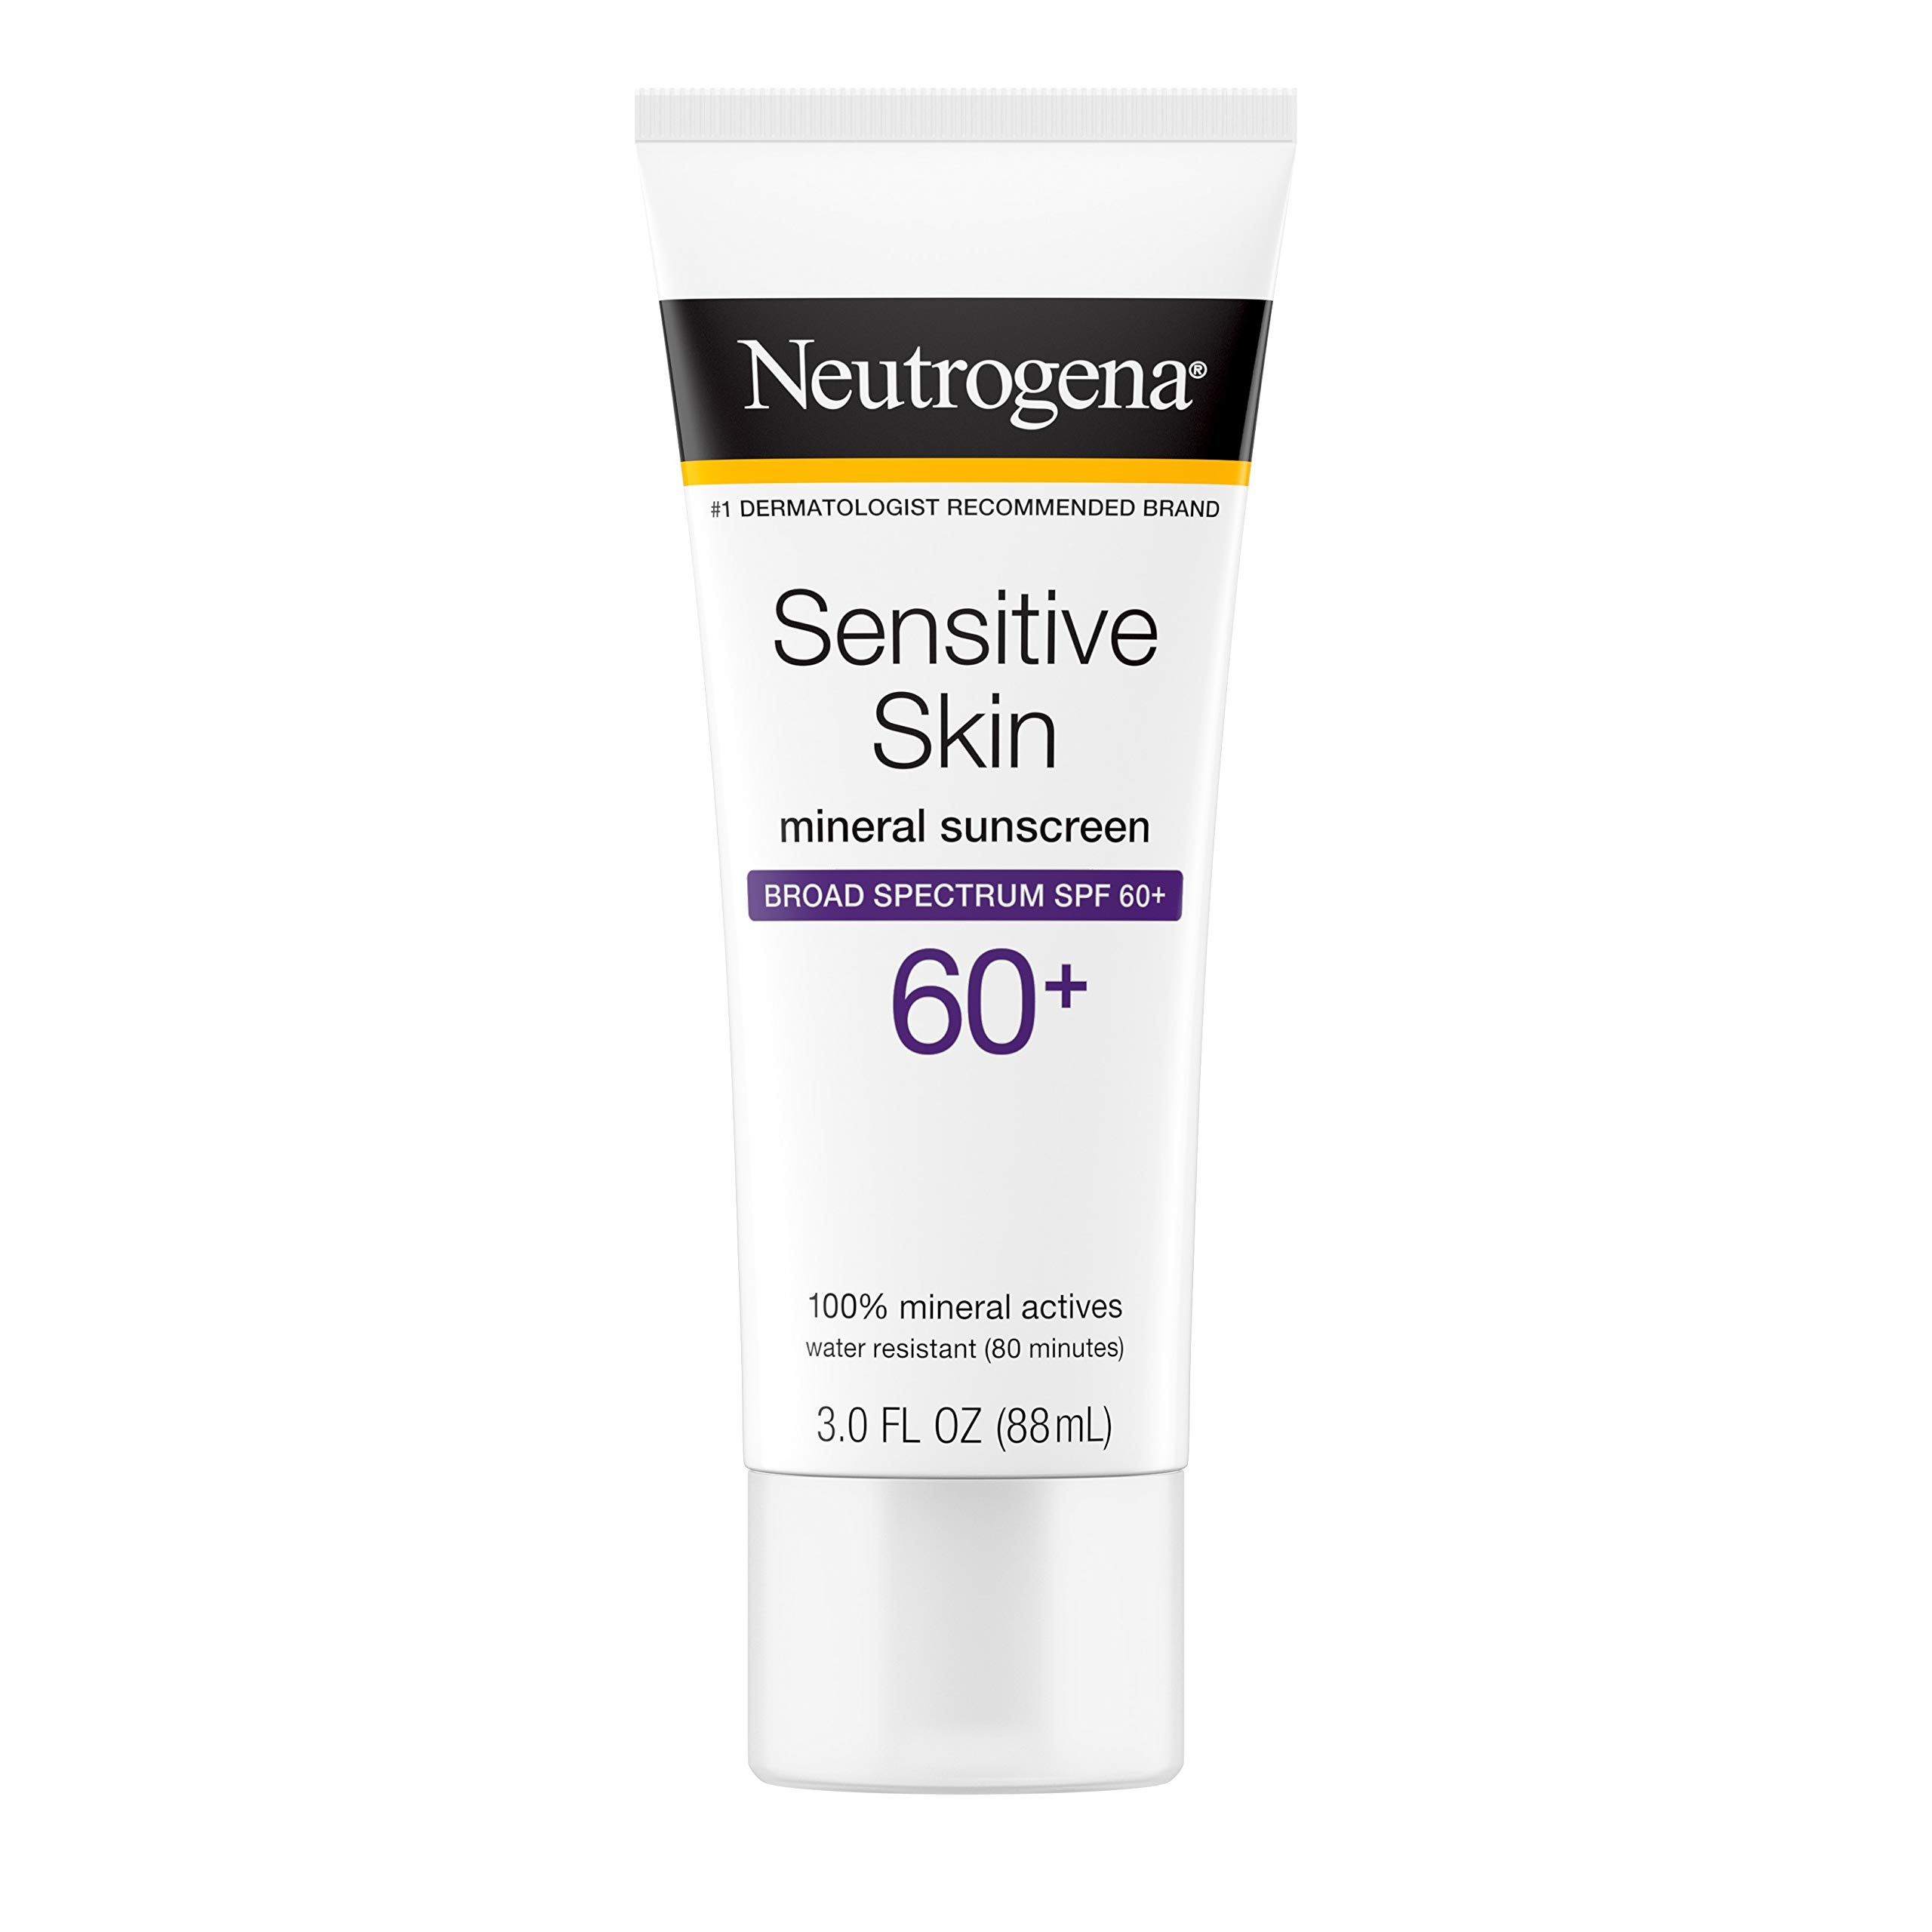 Neutrogena Sensitive Sunscreen Water Resistant Hypoallergenic